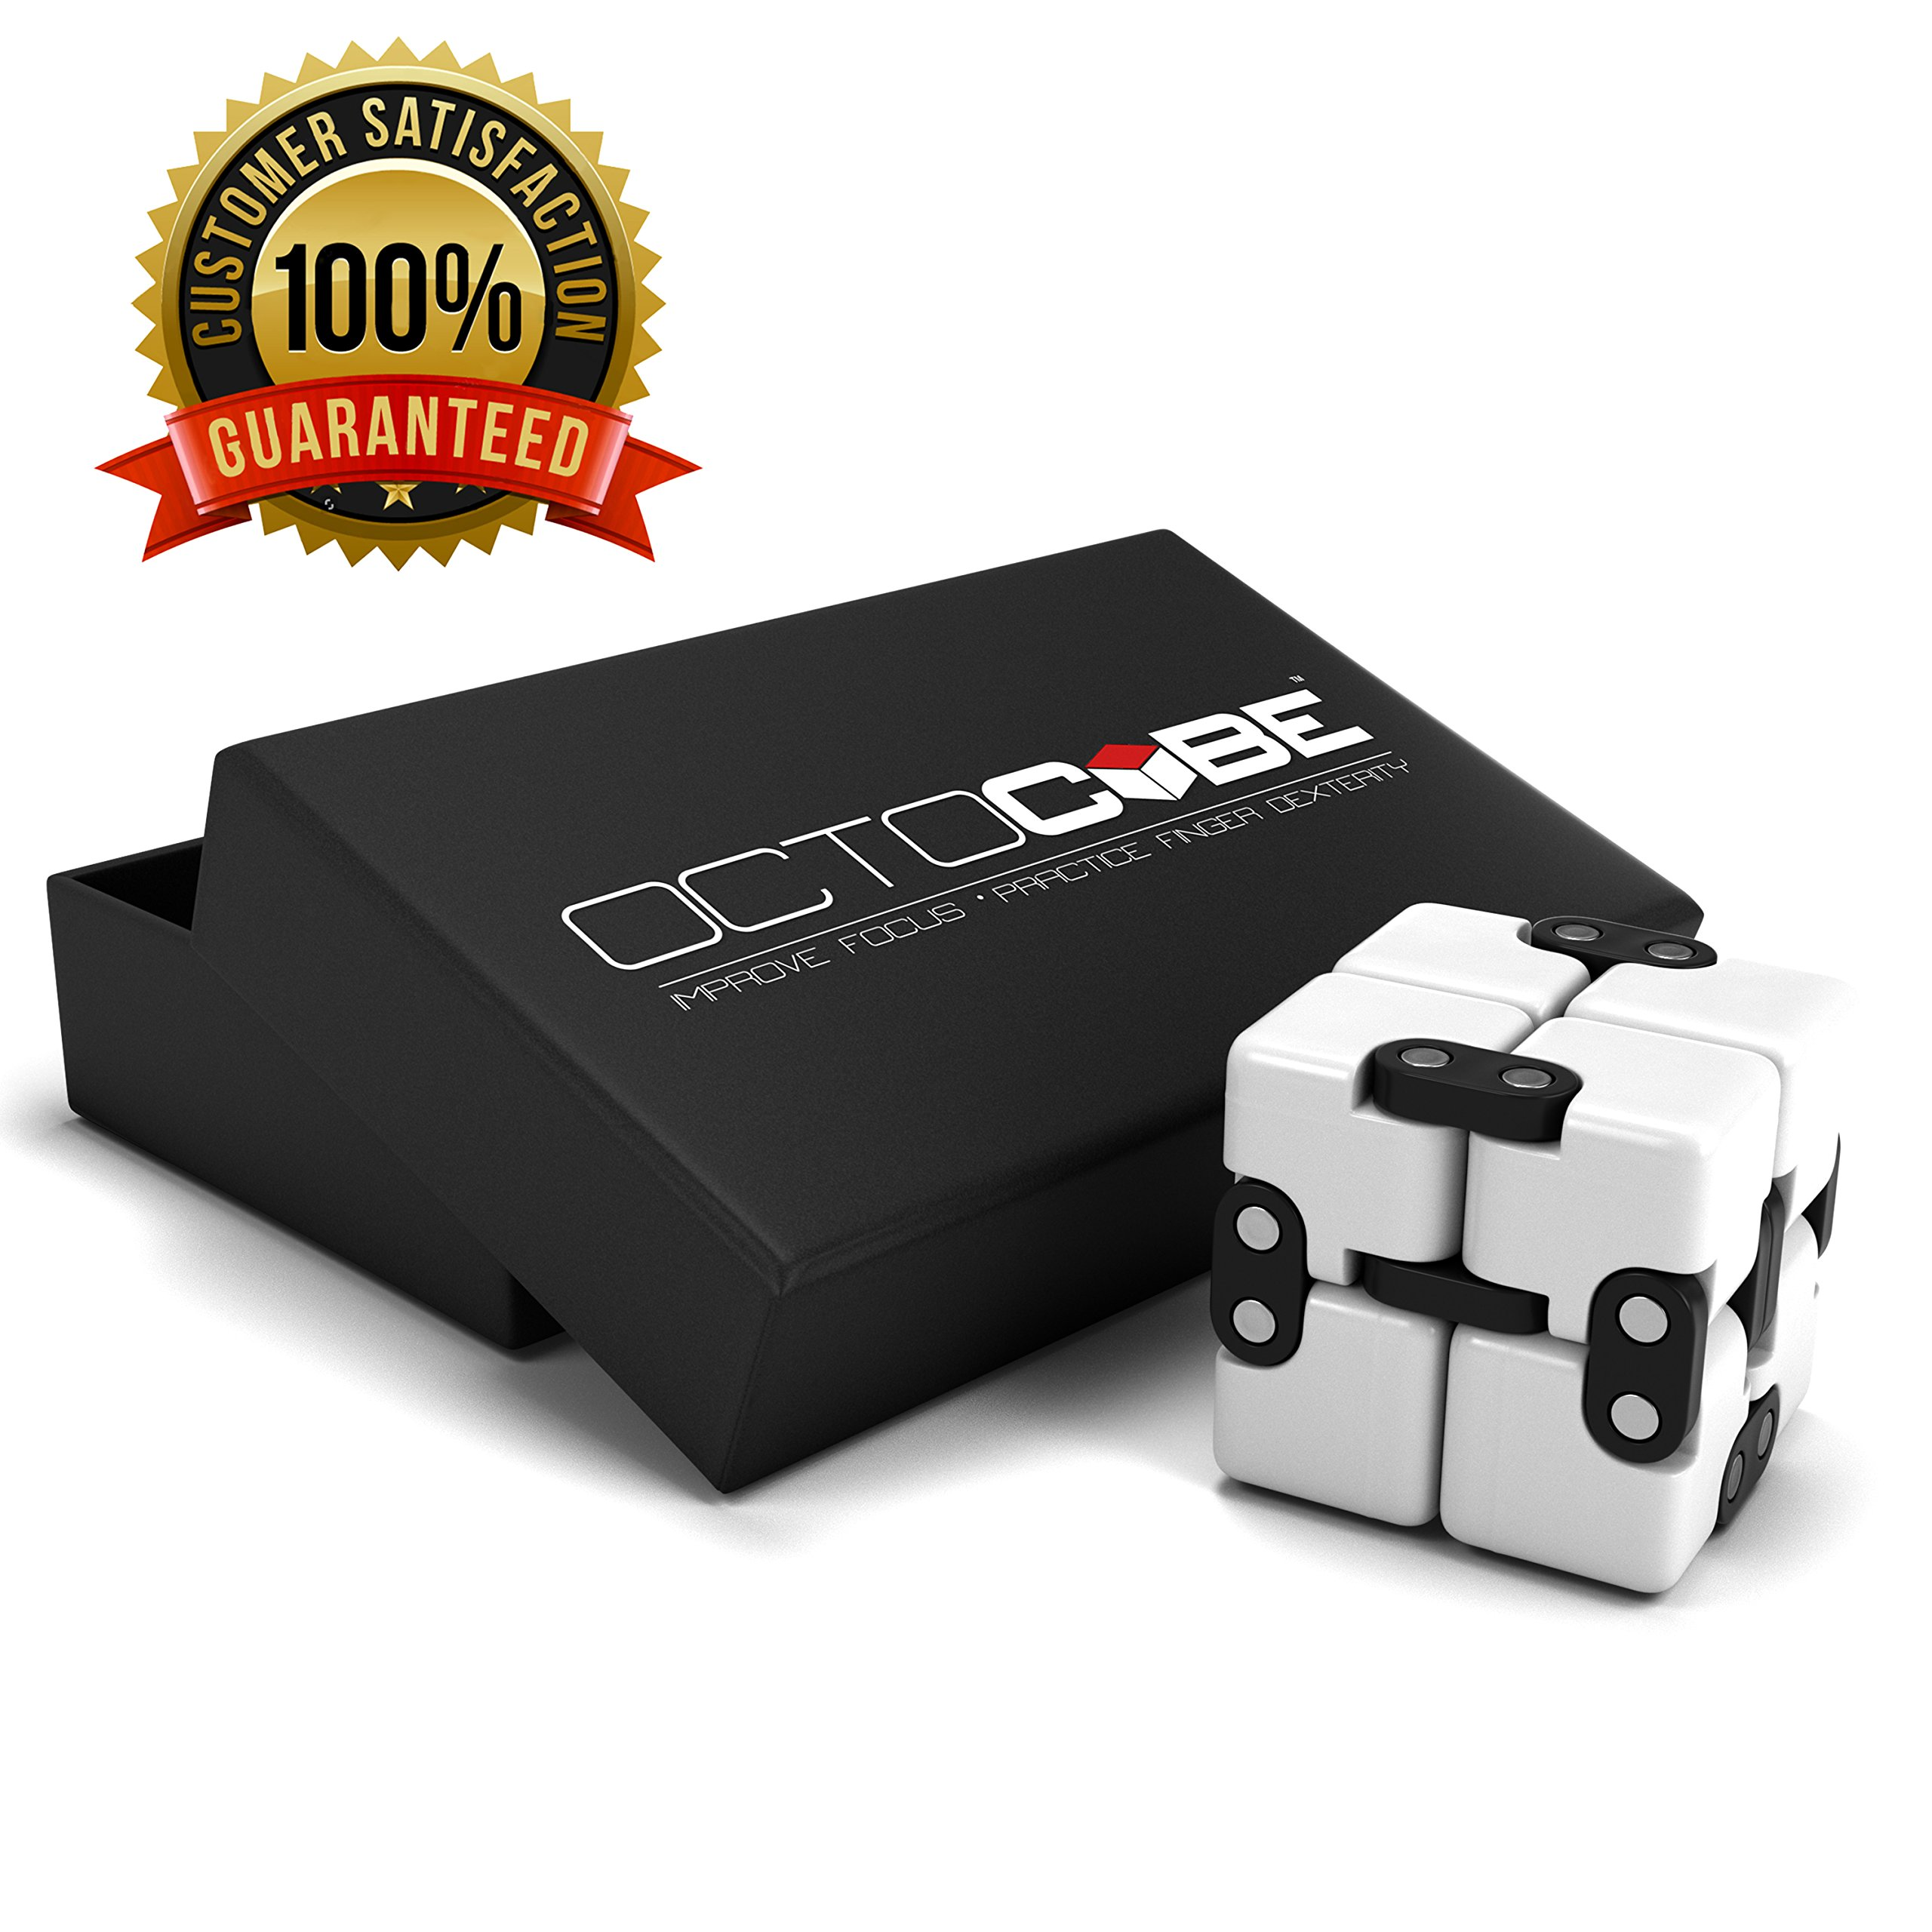 OCTOCUBE Infinity Cube Fidget Toy w/Gift Box - Luxury Infinite Cool Gadget for Kids, Adults - Prime Sensory Stress Relief, Pressure Reduction Unique Distraction for Autism, Quit Smoking - White